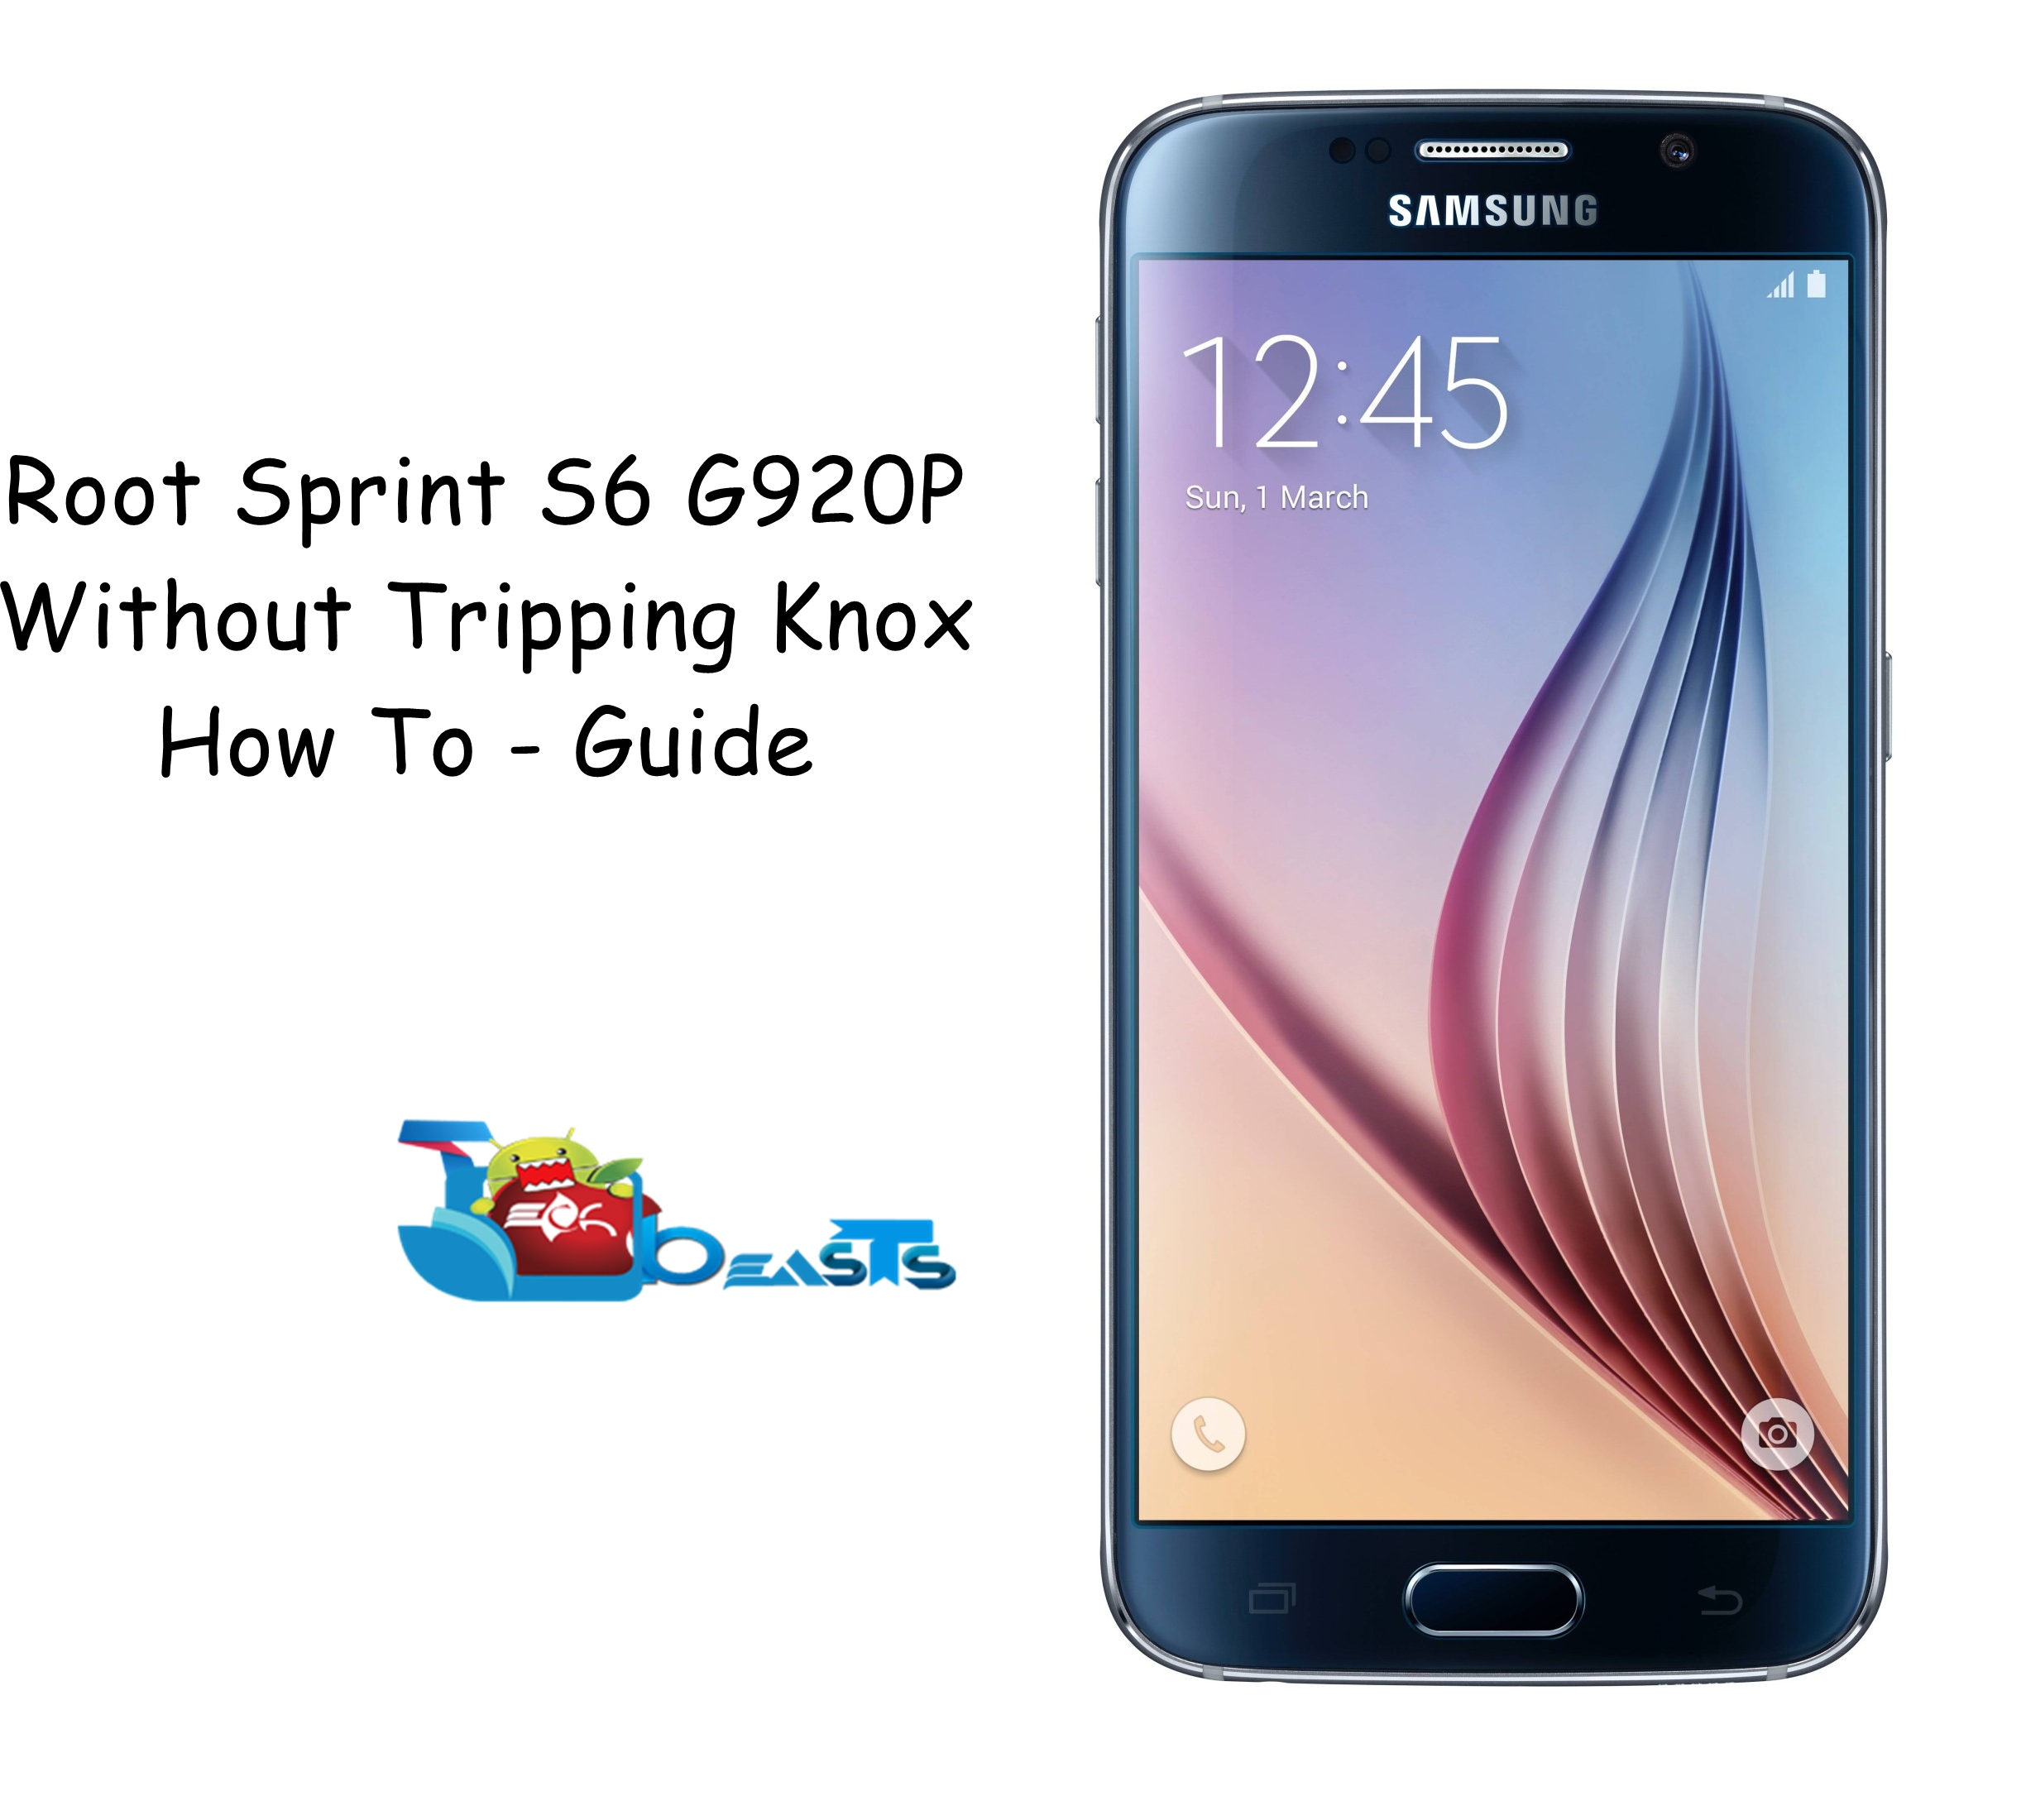 One-Tap Root For At&t and Verizon Galaxy Note 3 Without ...